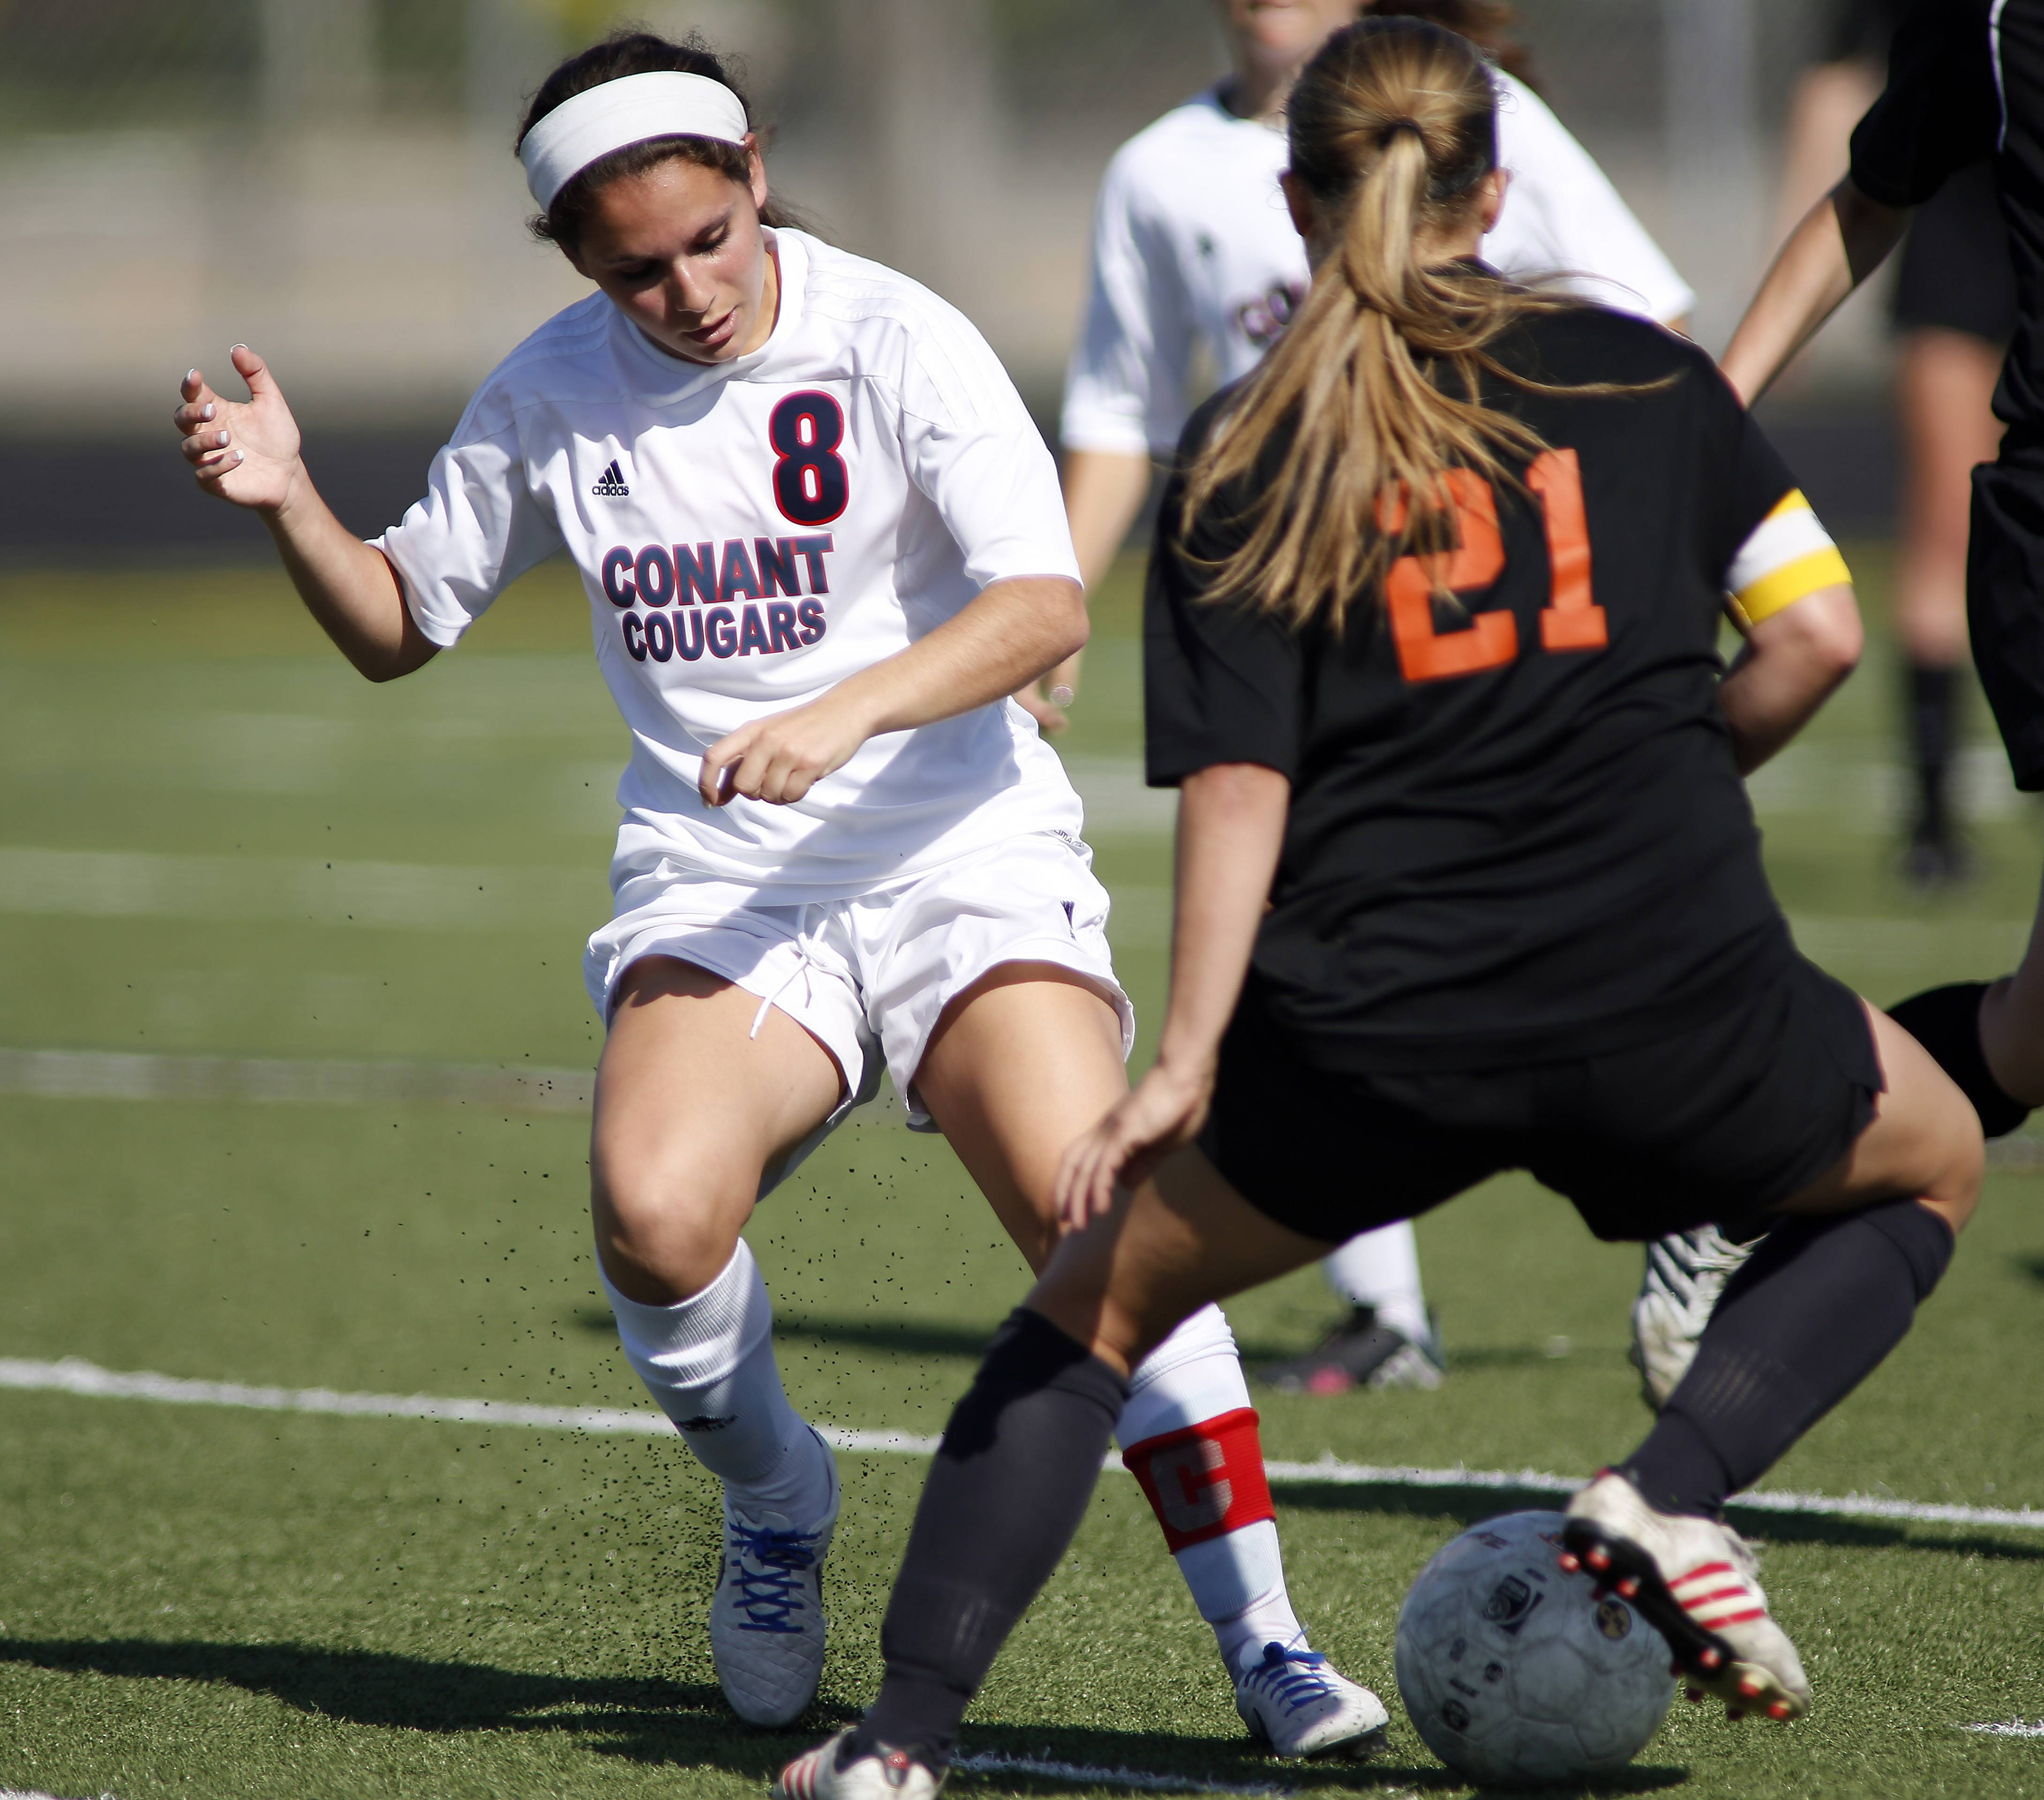 Conant's Bianca Madonia pressures St. Charles East's Amanda Hilton during Friday's sectional final at Conant.